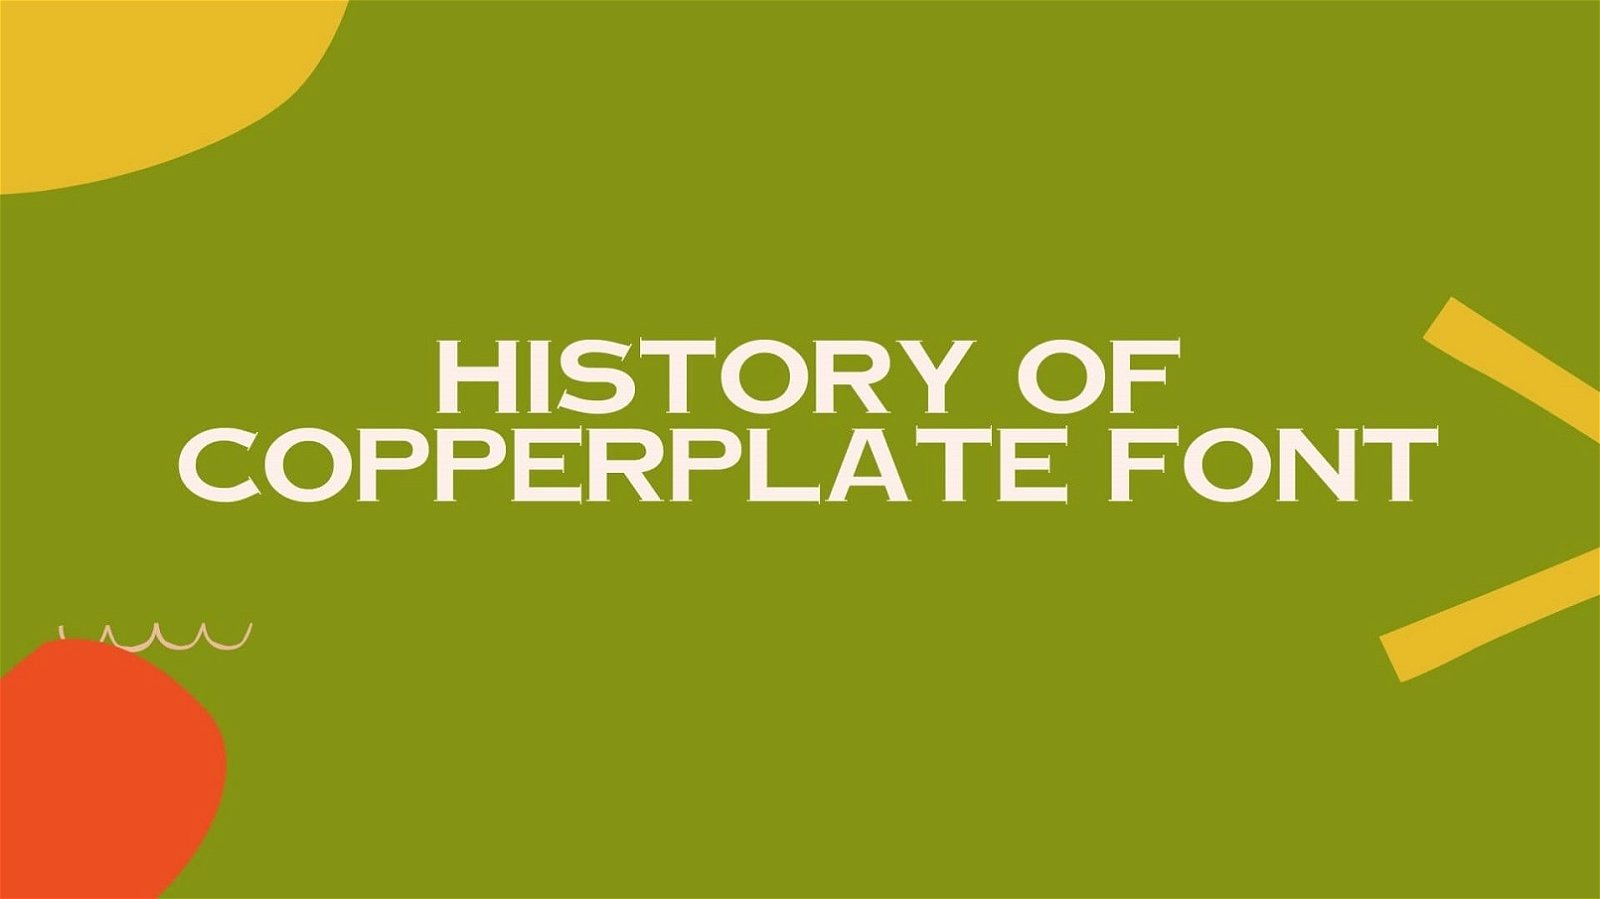 History of Copperplate Font